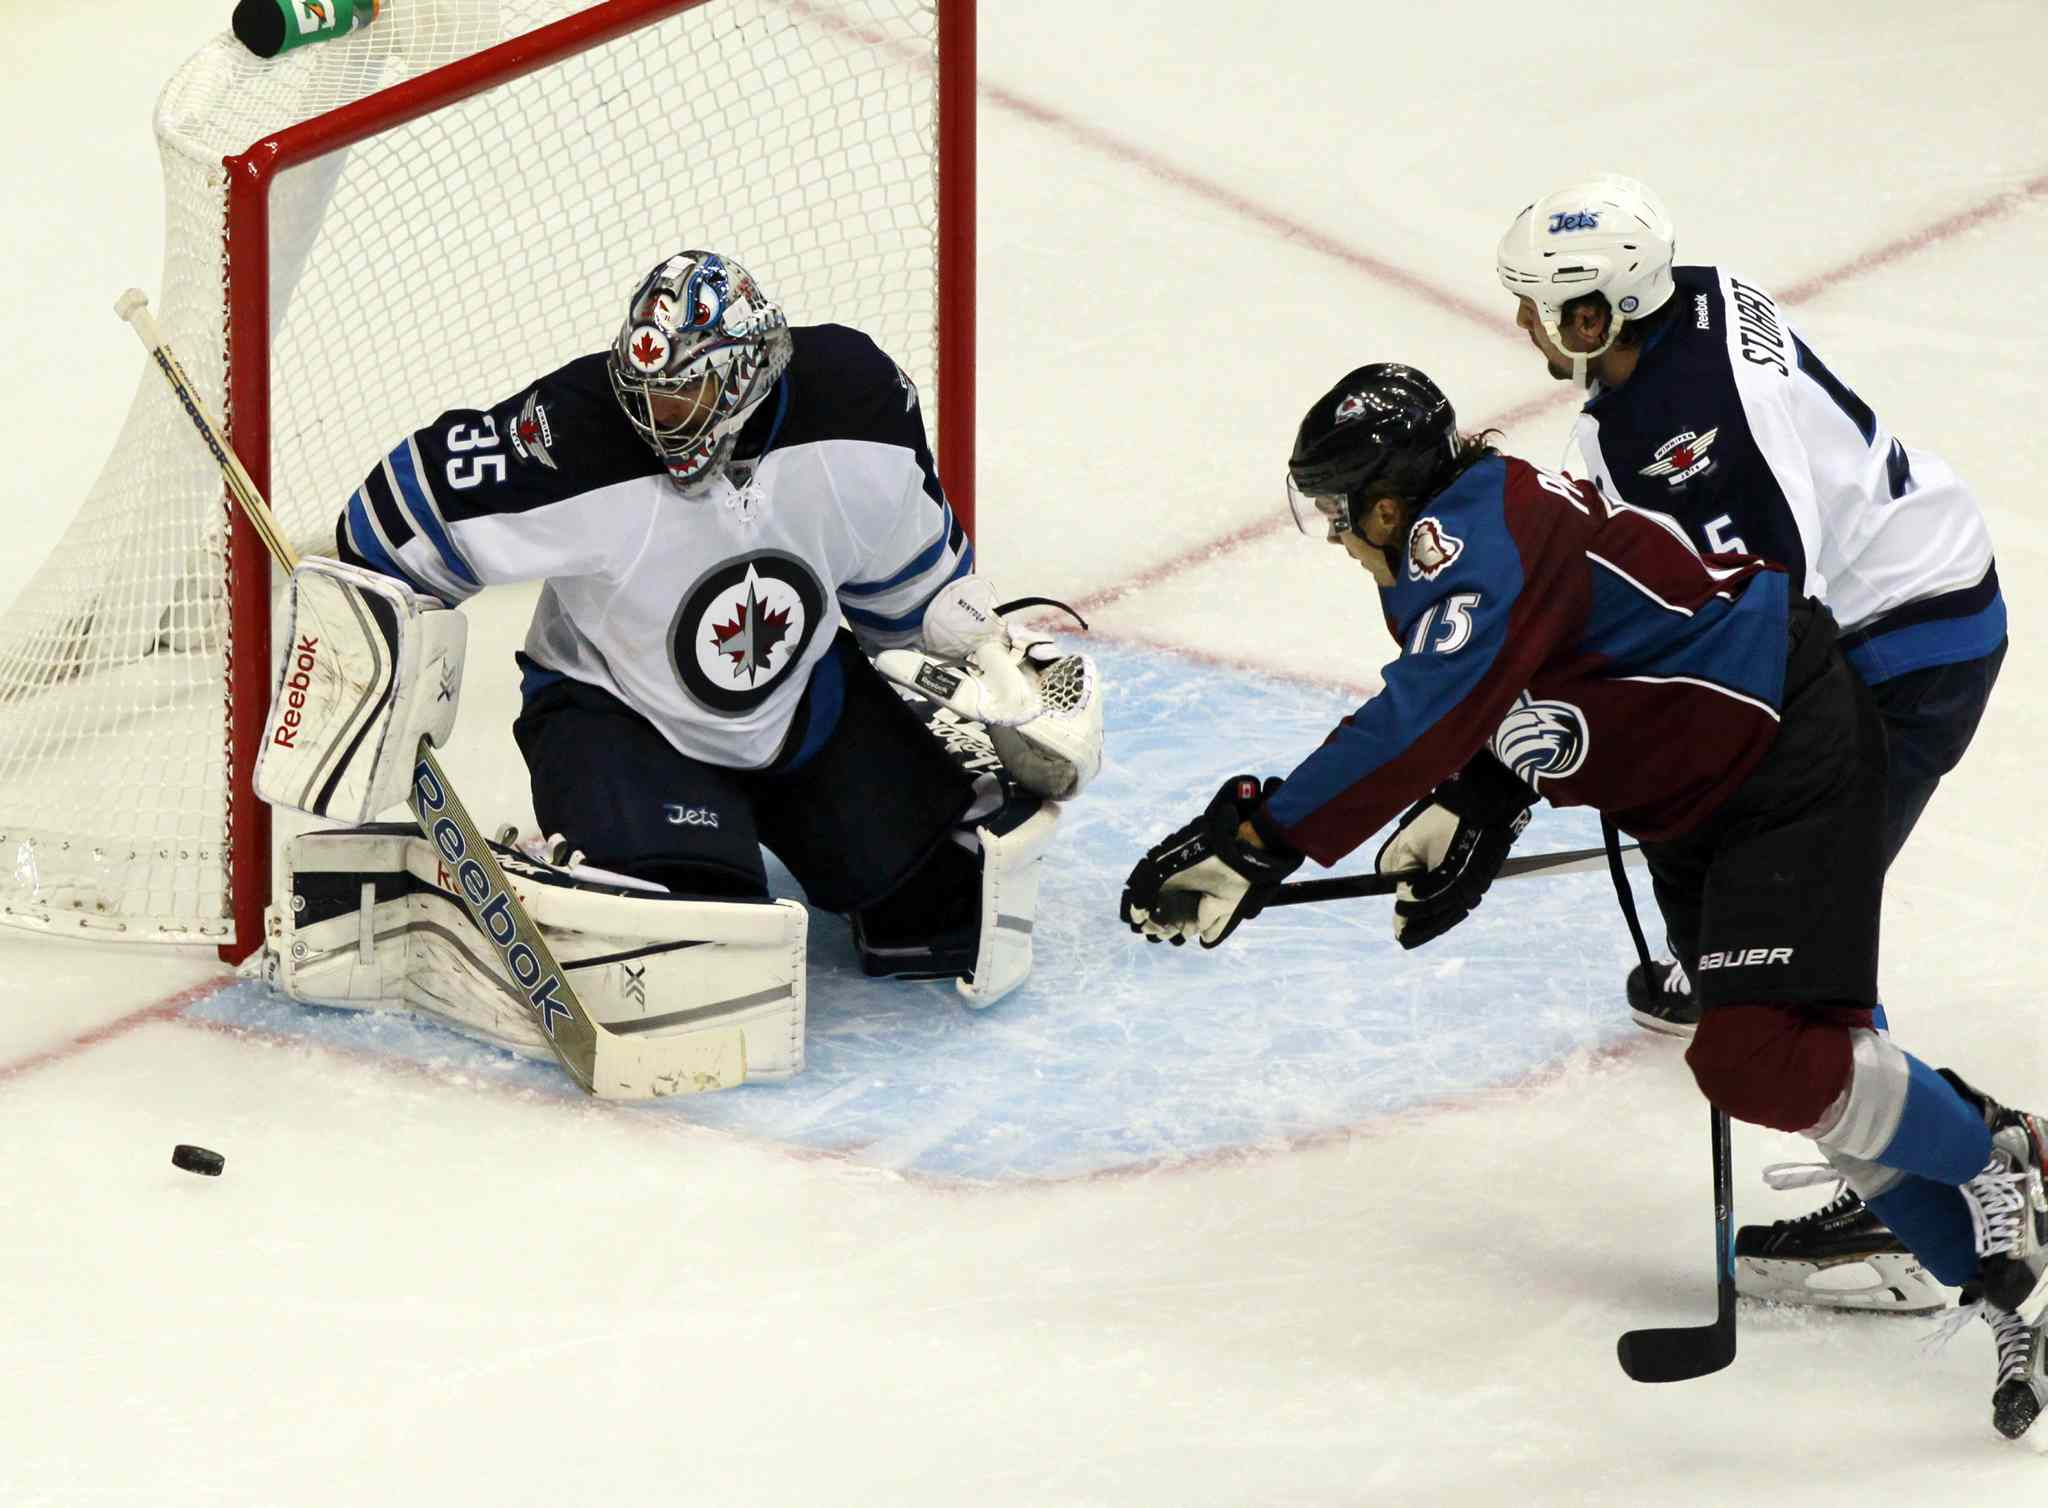 Winnipeg Jets goalie Al Montoya makes a stick save off a shot by Colorado Avalanche winger PA Parenteau (centre) as Jets defenceman Mark Stuart backchecks during the third period.